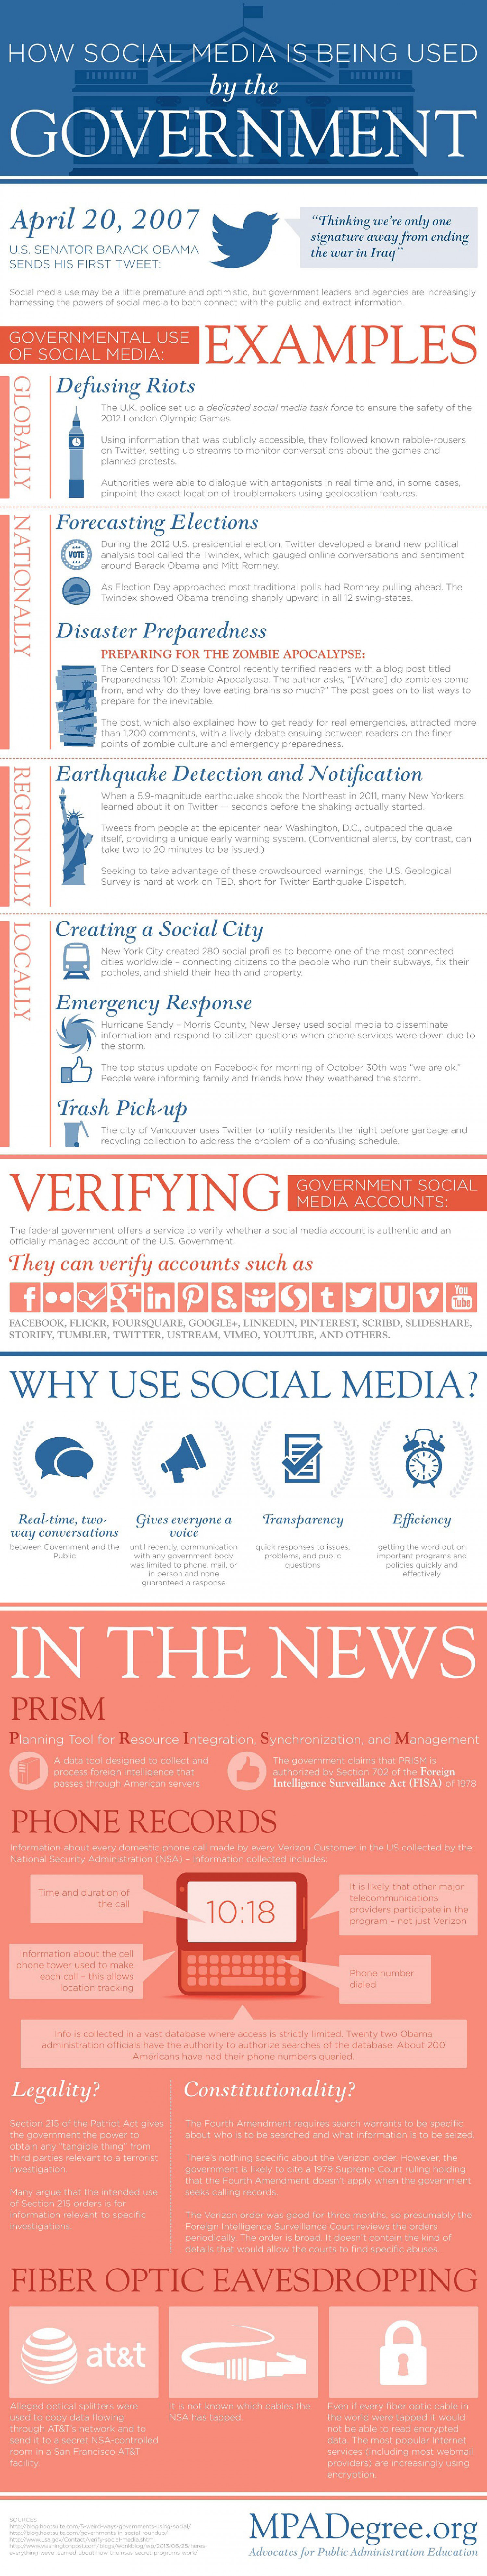 How Social Media is Being Used by The Government Infographic